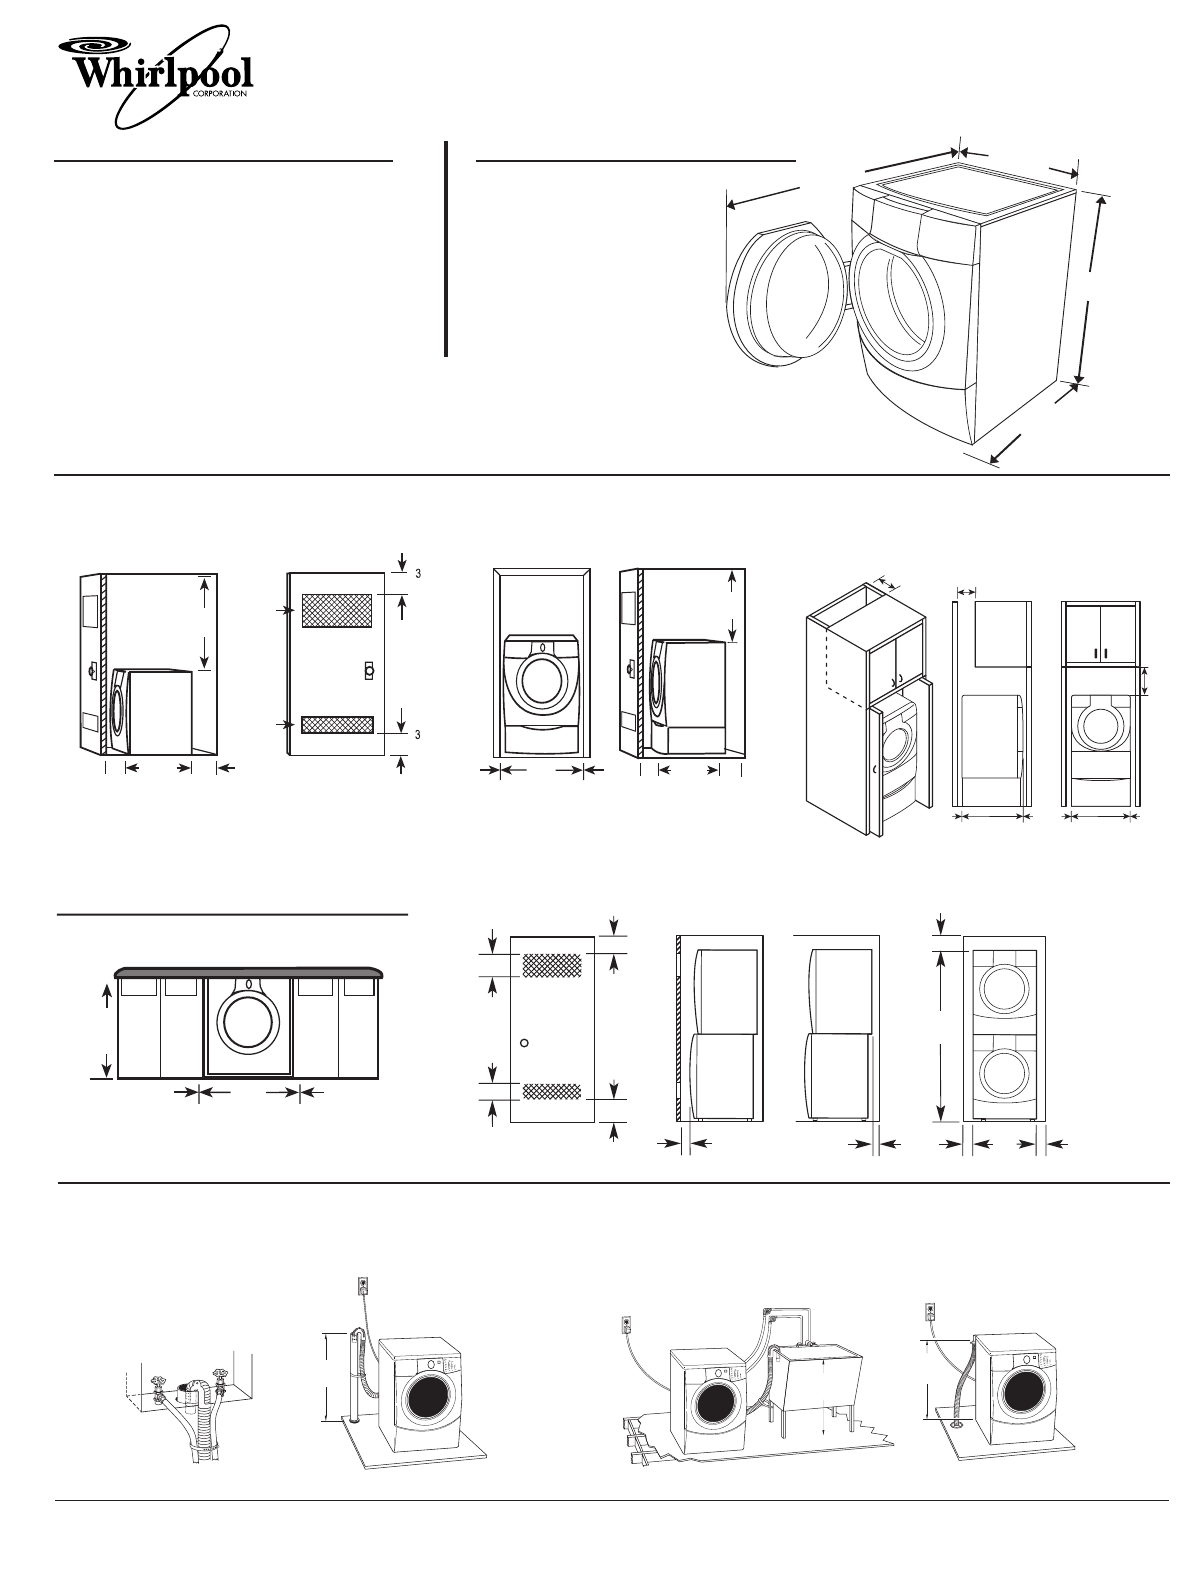 Whirlpool Washer Wfw9500t User Guide Manualsonlinecom W10158196a Wiring Schematics Manual